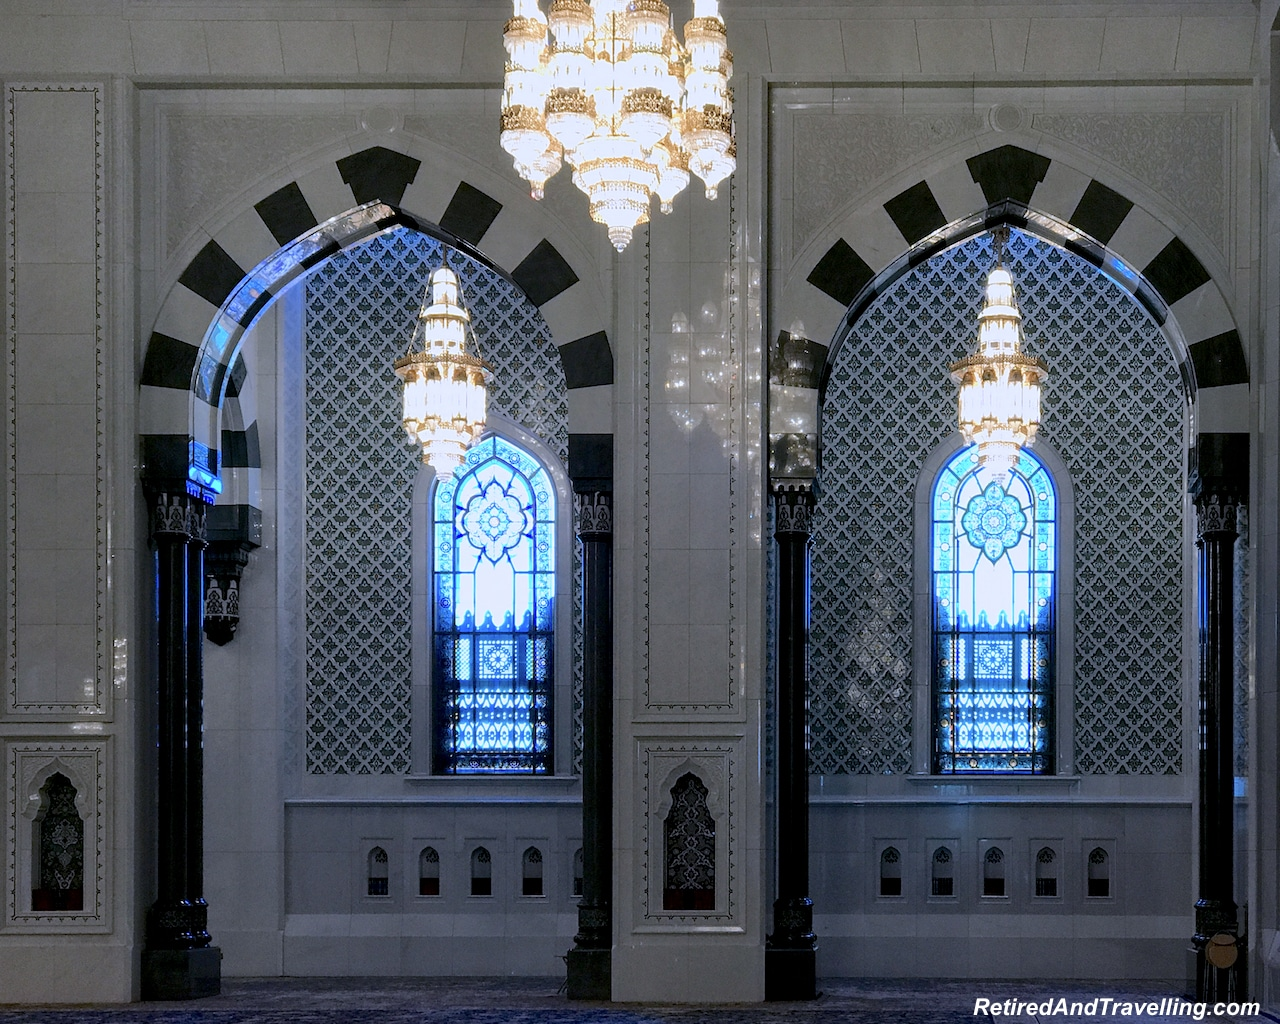 Main Prayer Room Arches and Stained Glass - Grand Mosque in Muscat.jpg